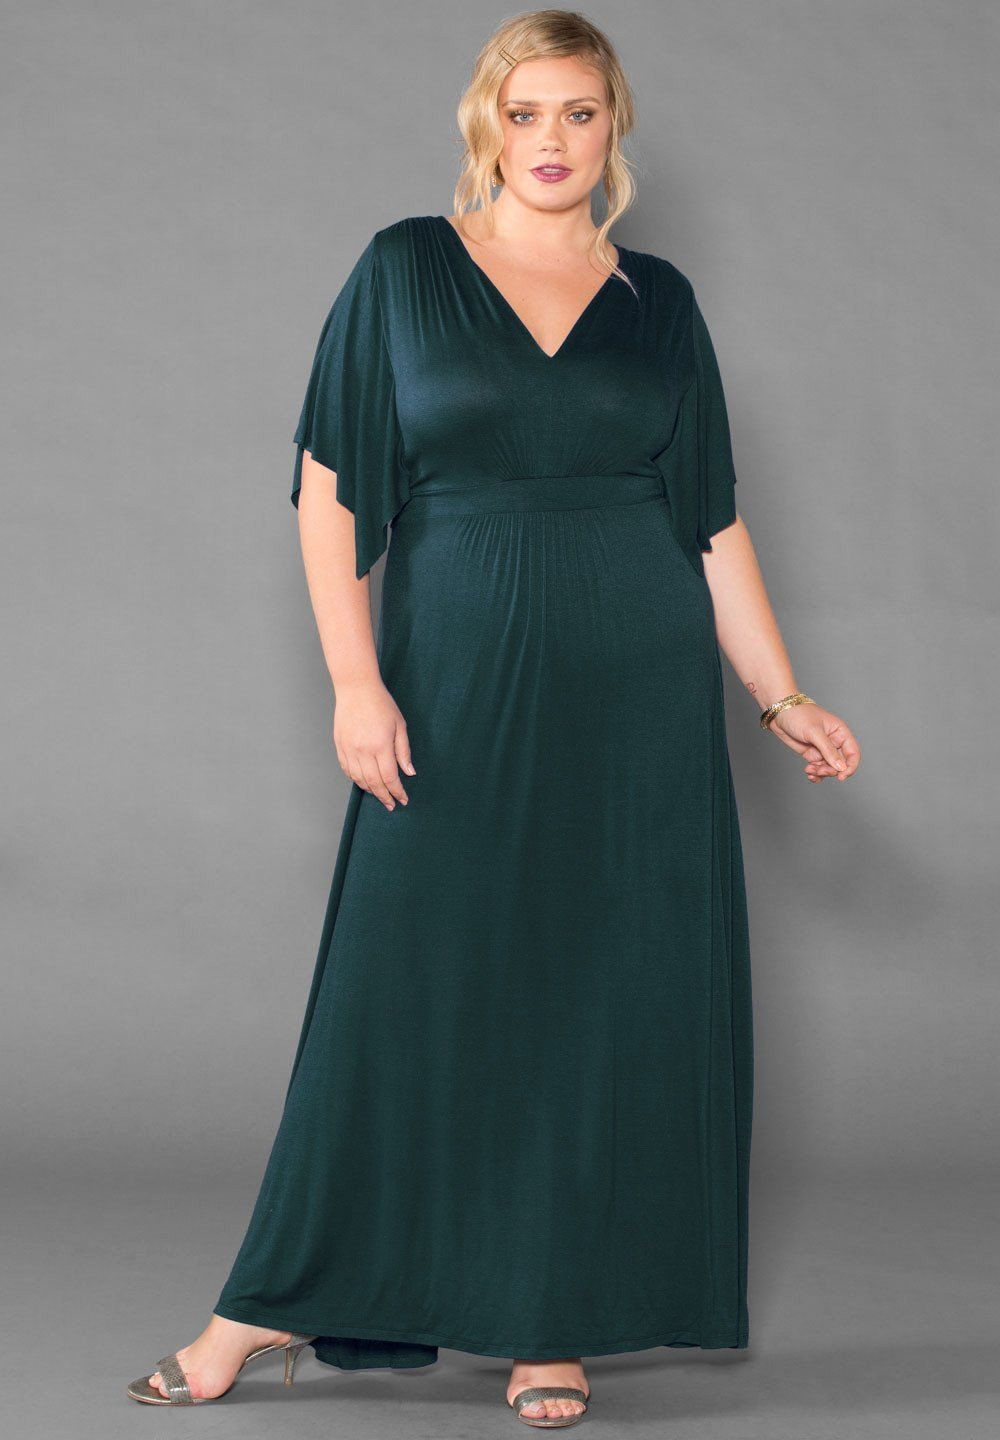 b3afa1b68968b Essential Clothing Plus Size Dress